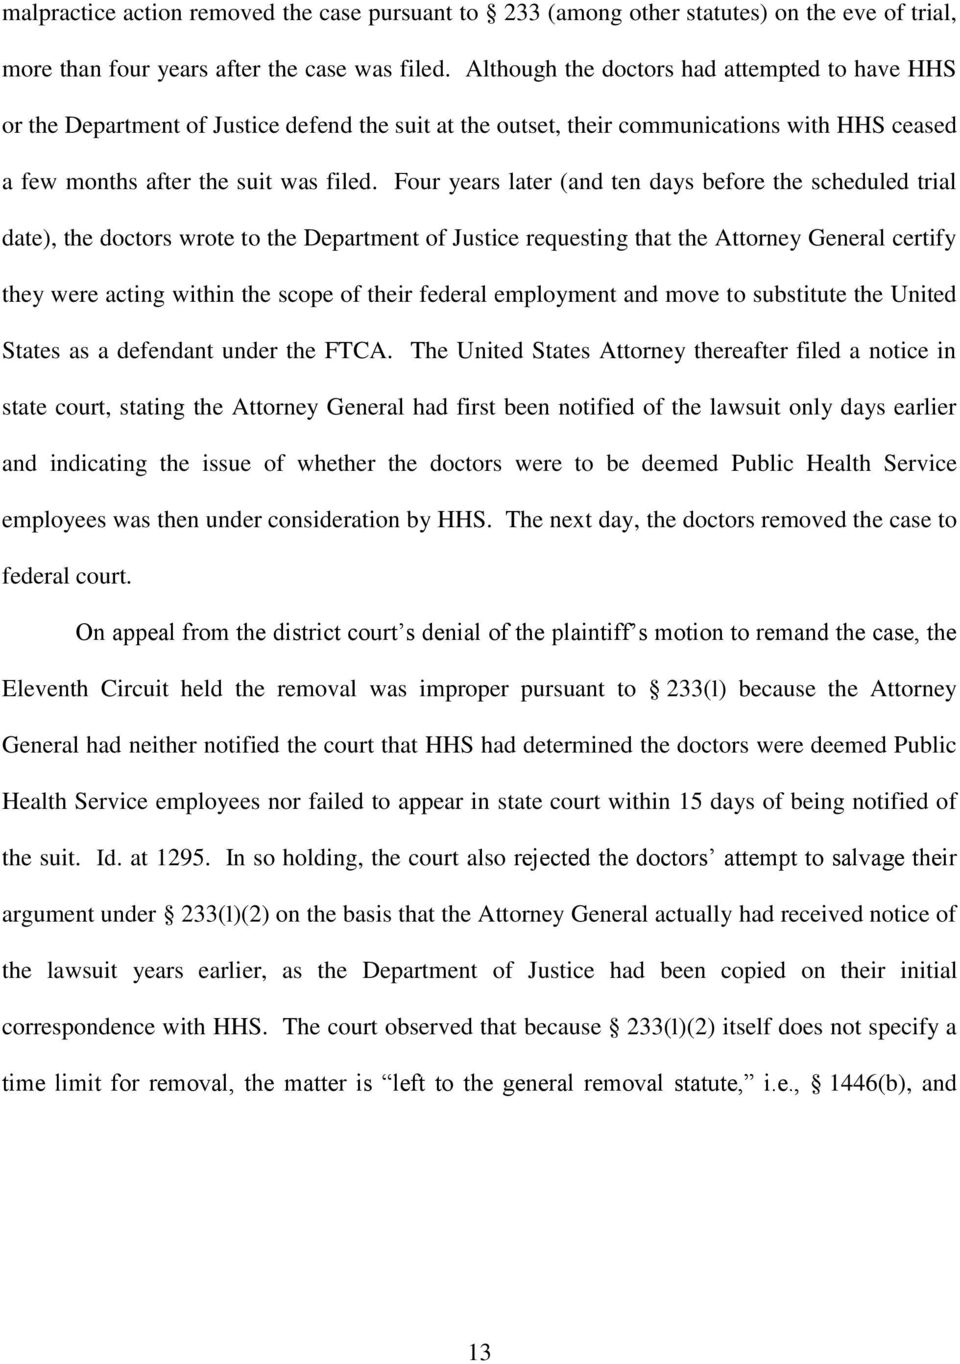 Four years later (and ten days before the scheduled trial date), the doctors wrote to the Department of Justice requesting that the Attorney General certify they were acting within the scope of their